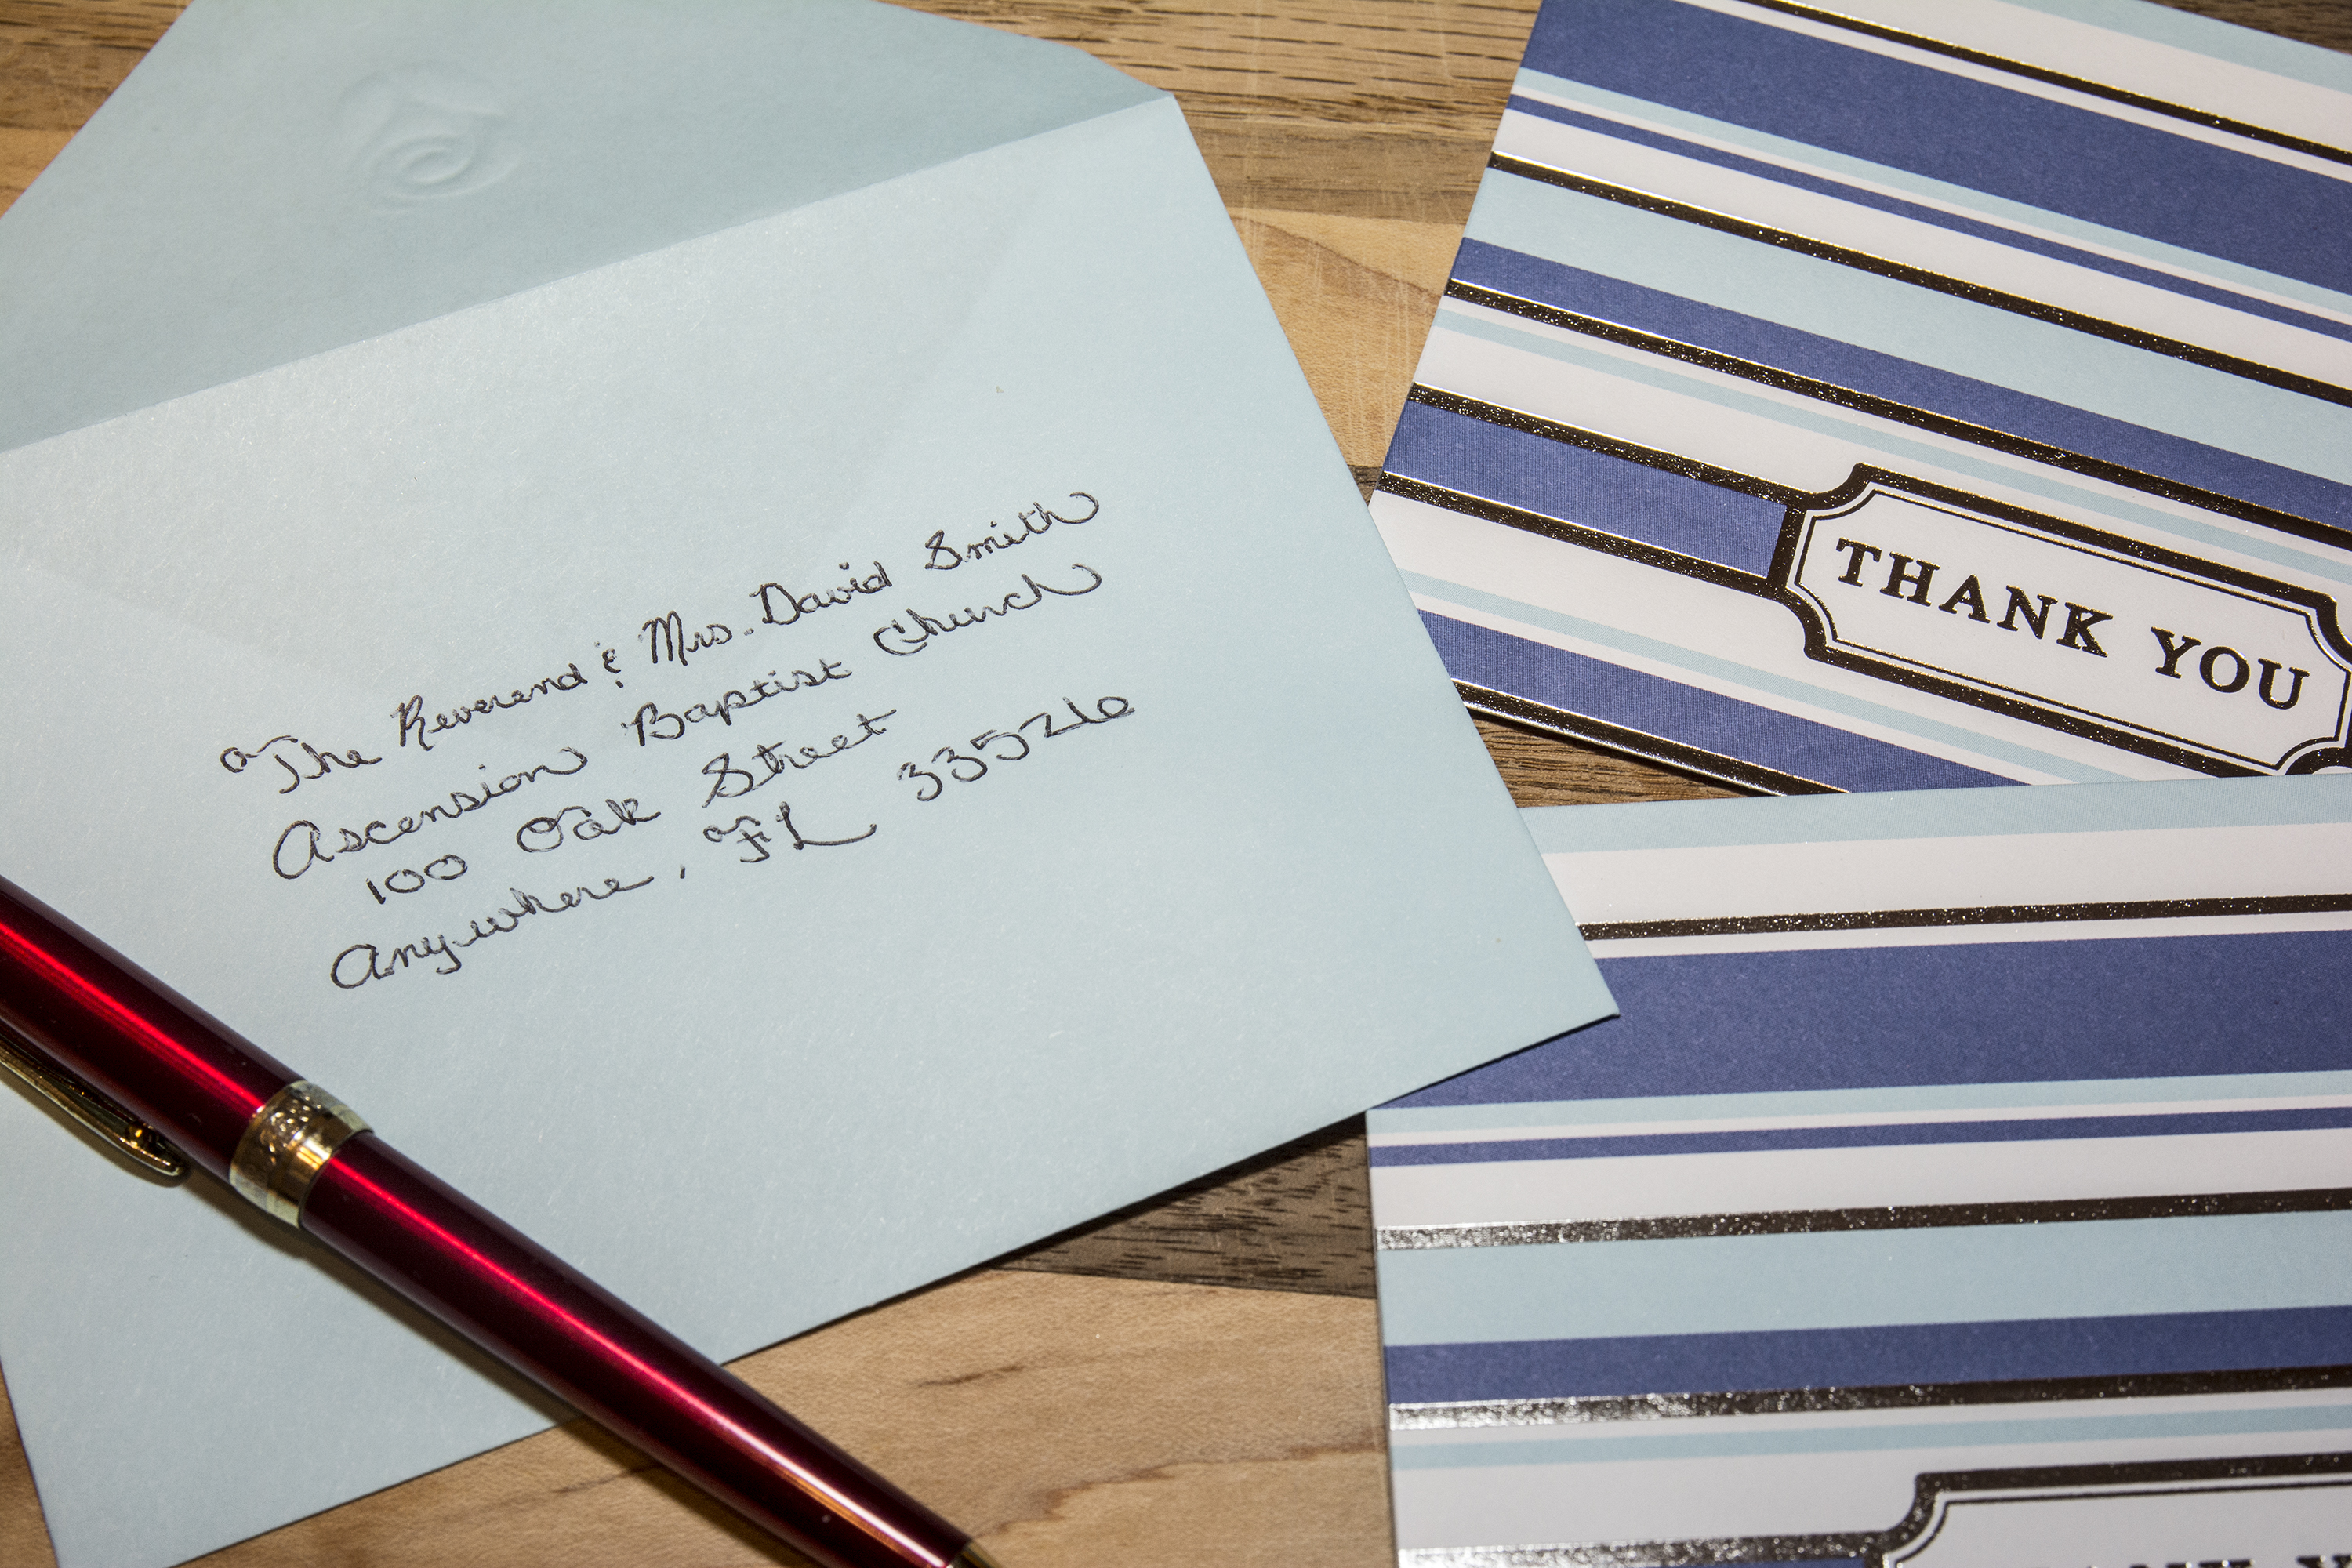 How to Address an Envelope to